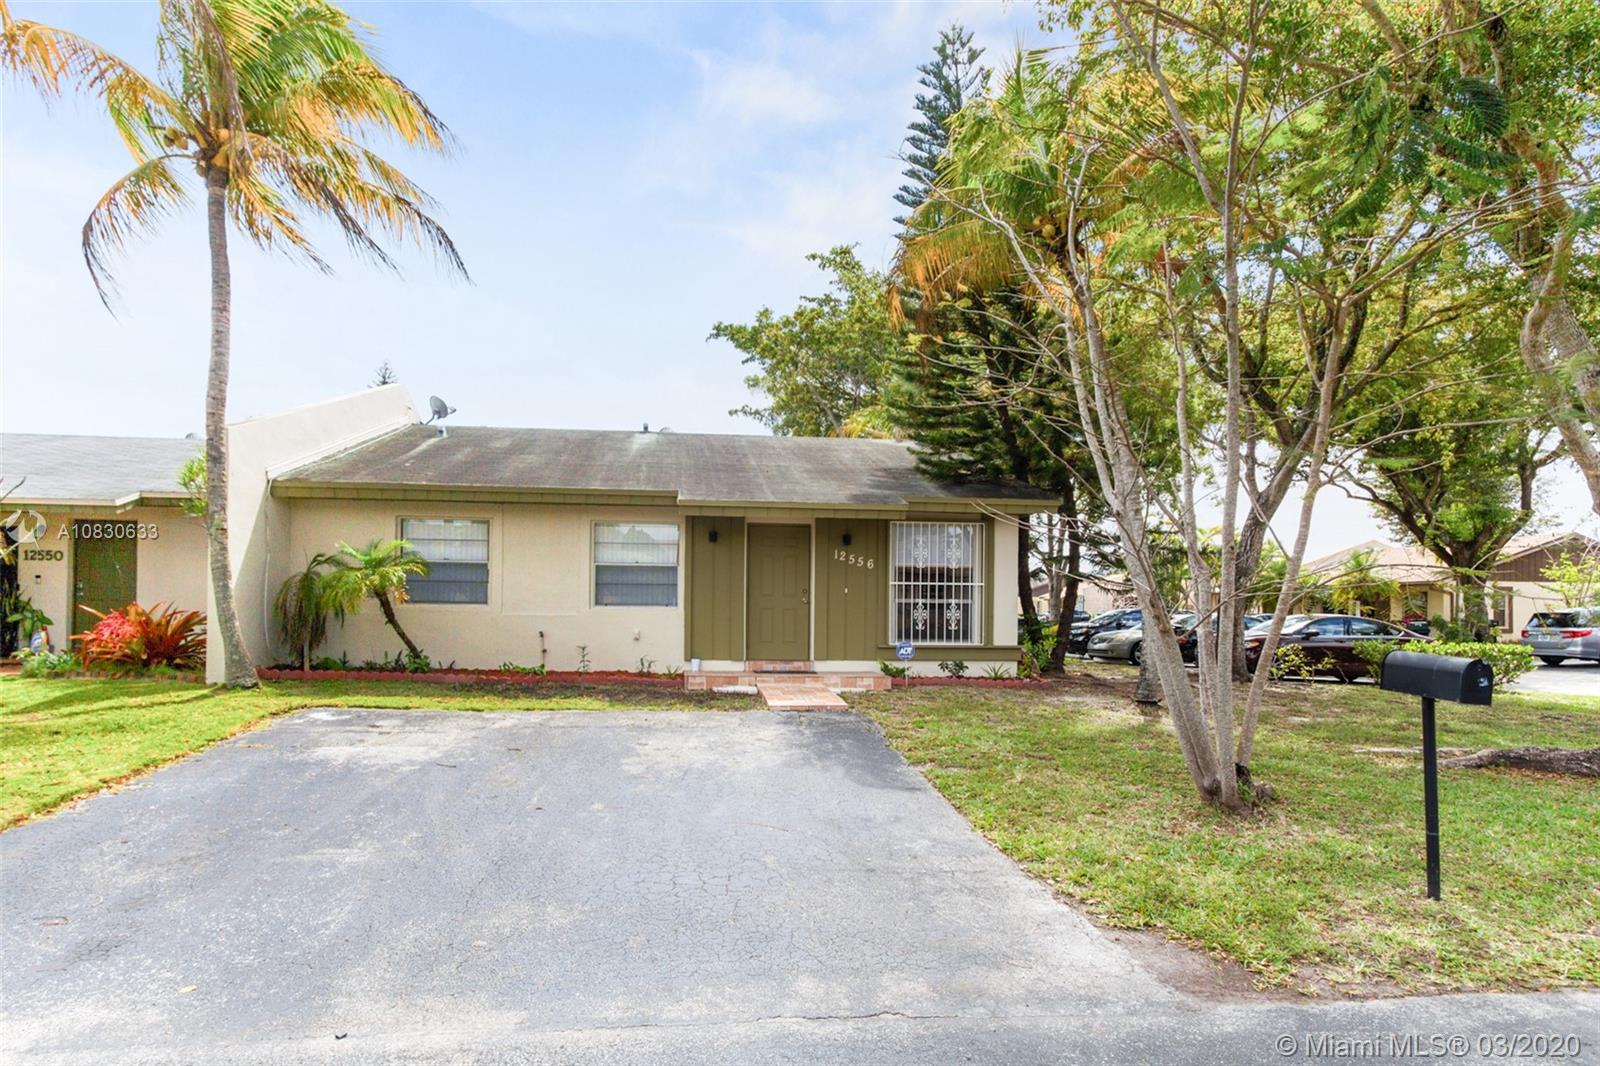 12556 SW 118th Ter, Miami, Florida 33186, 3 Bedrooms Bedrooms, ,2 BathroomsBathrooms,Residential,For Sale,12556 SW 118th Ter,A10830633